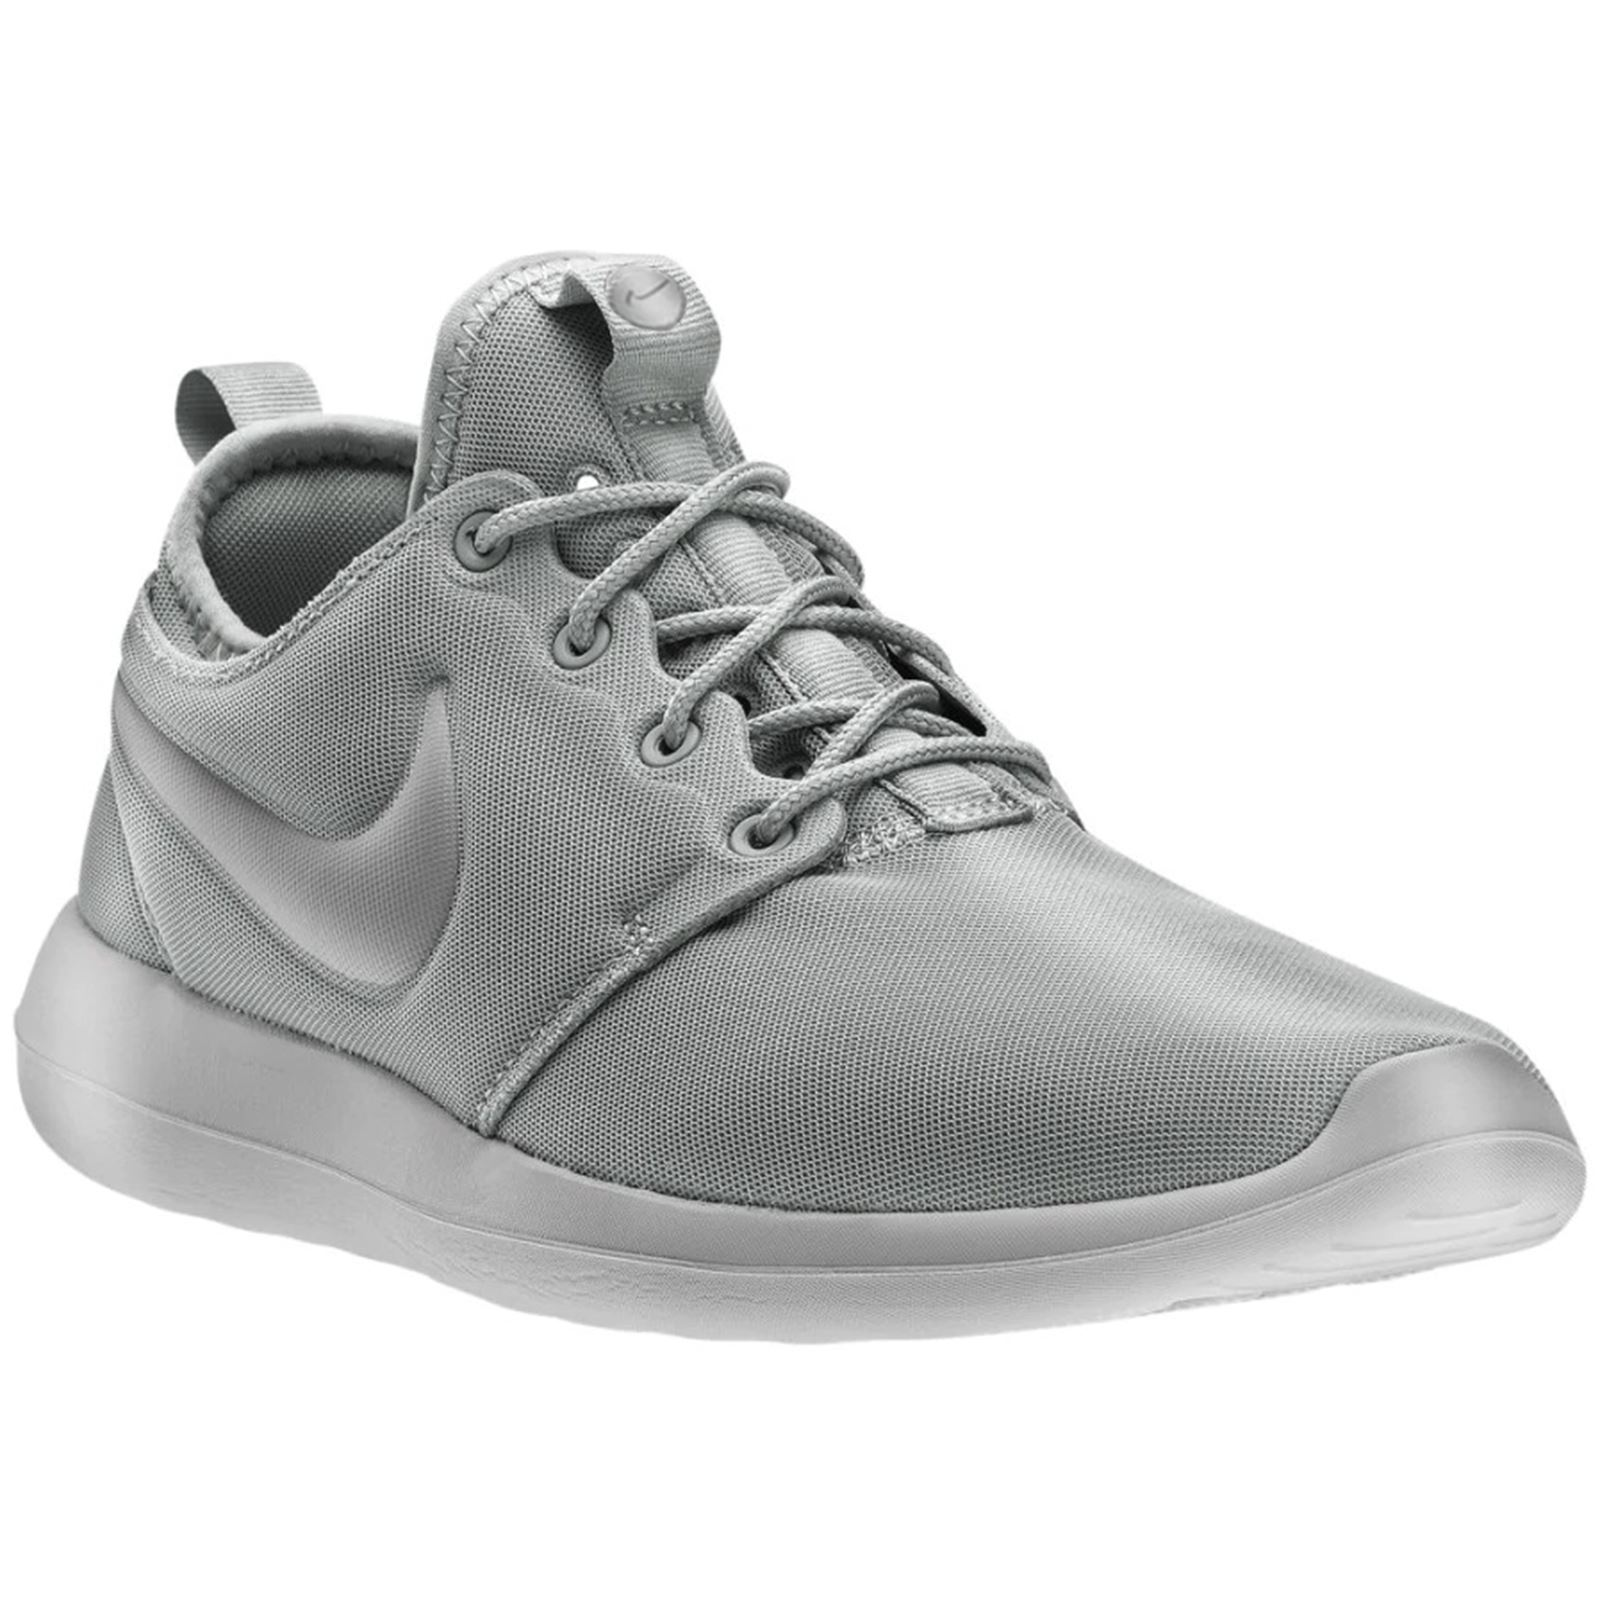 83d8c7edaacd0 Nike Roshe Two Wolf Grey Mens Mesh Low-Top Lightweight Casual ...